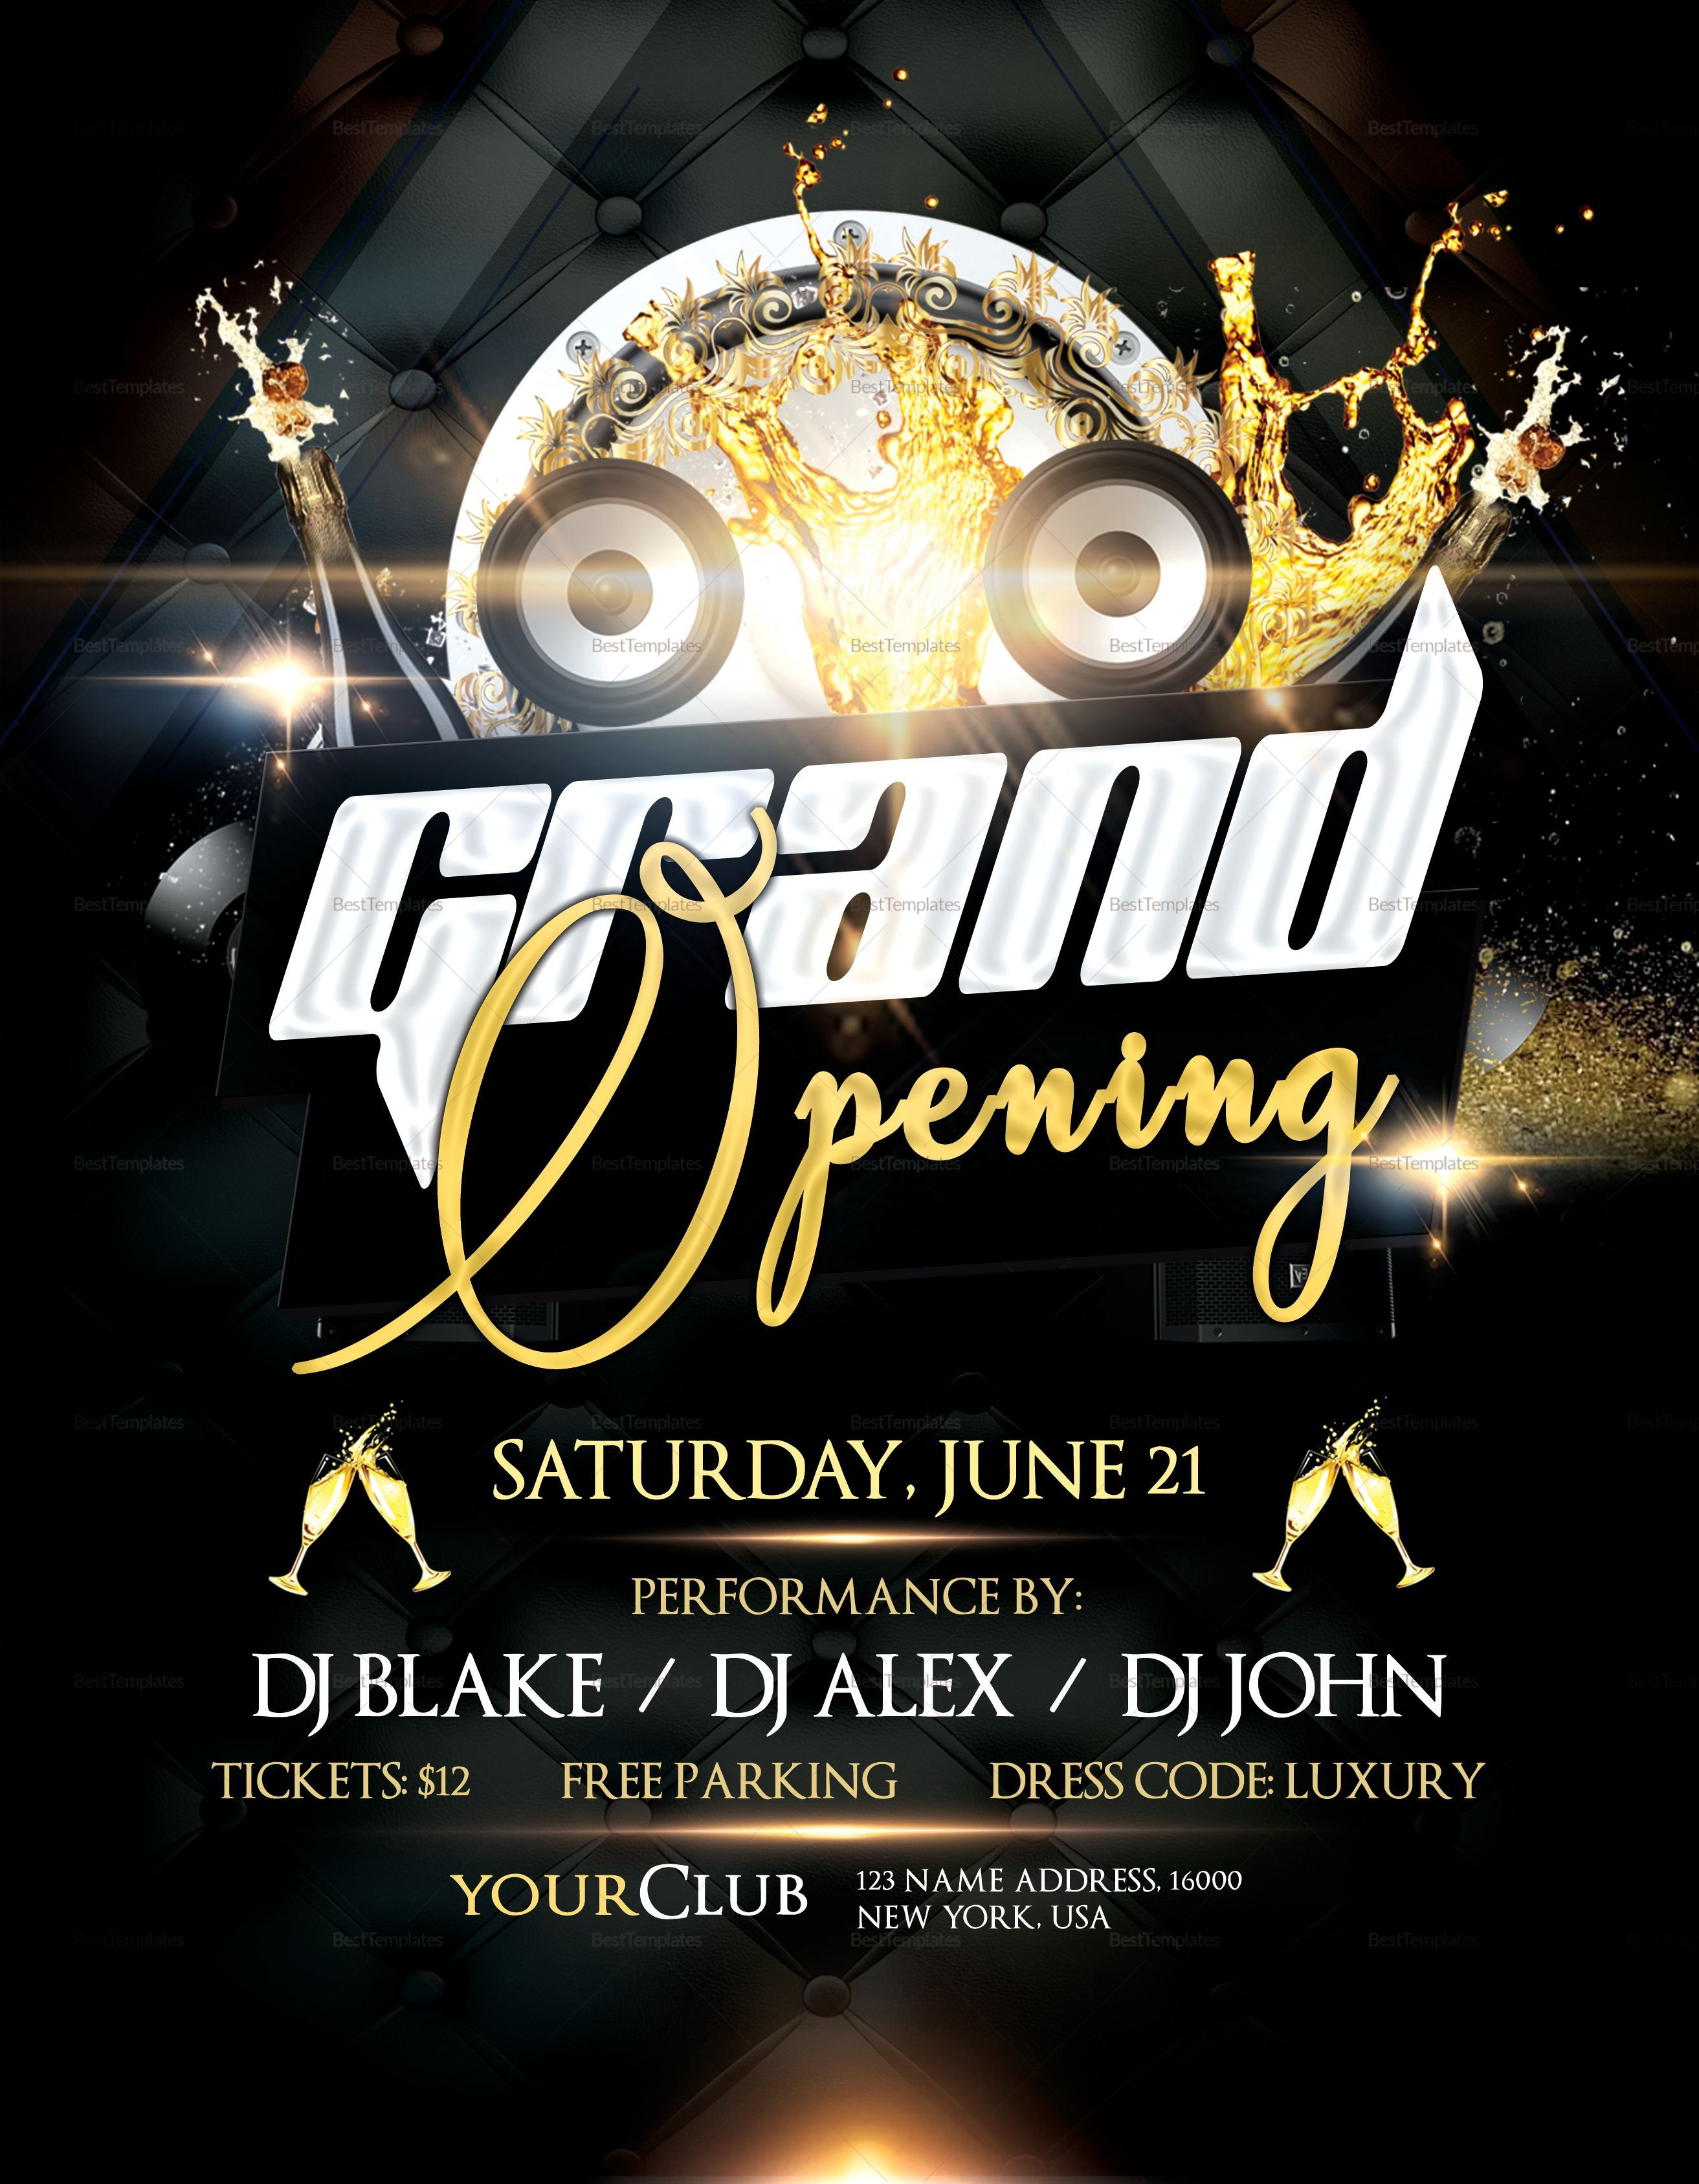 006 Stunning Grand Opening Flyer Template Example  Free Psd BusinesFull